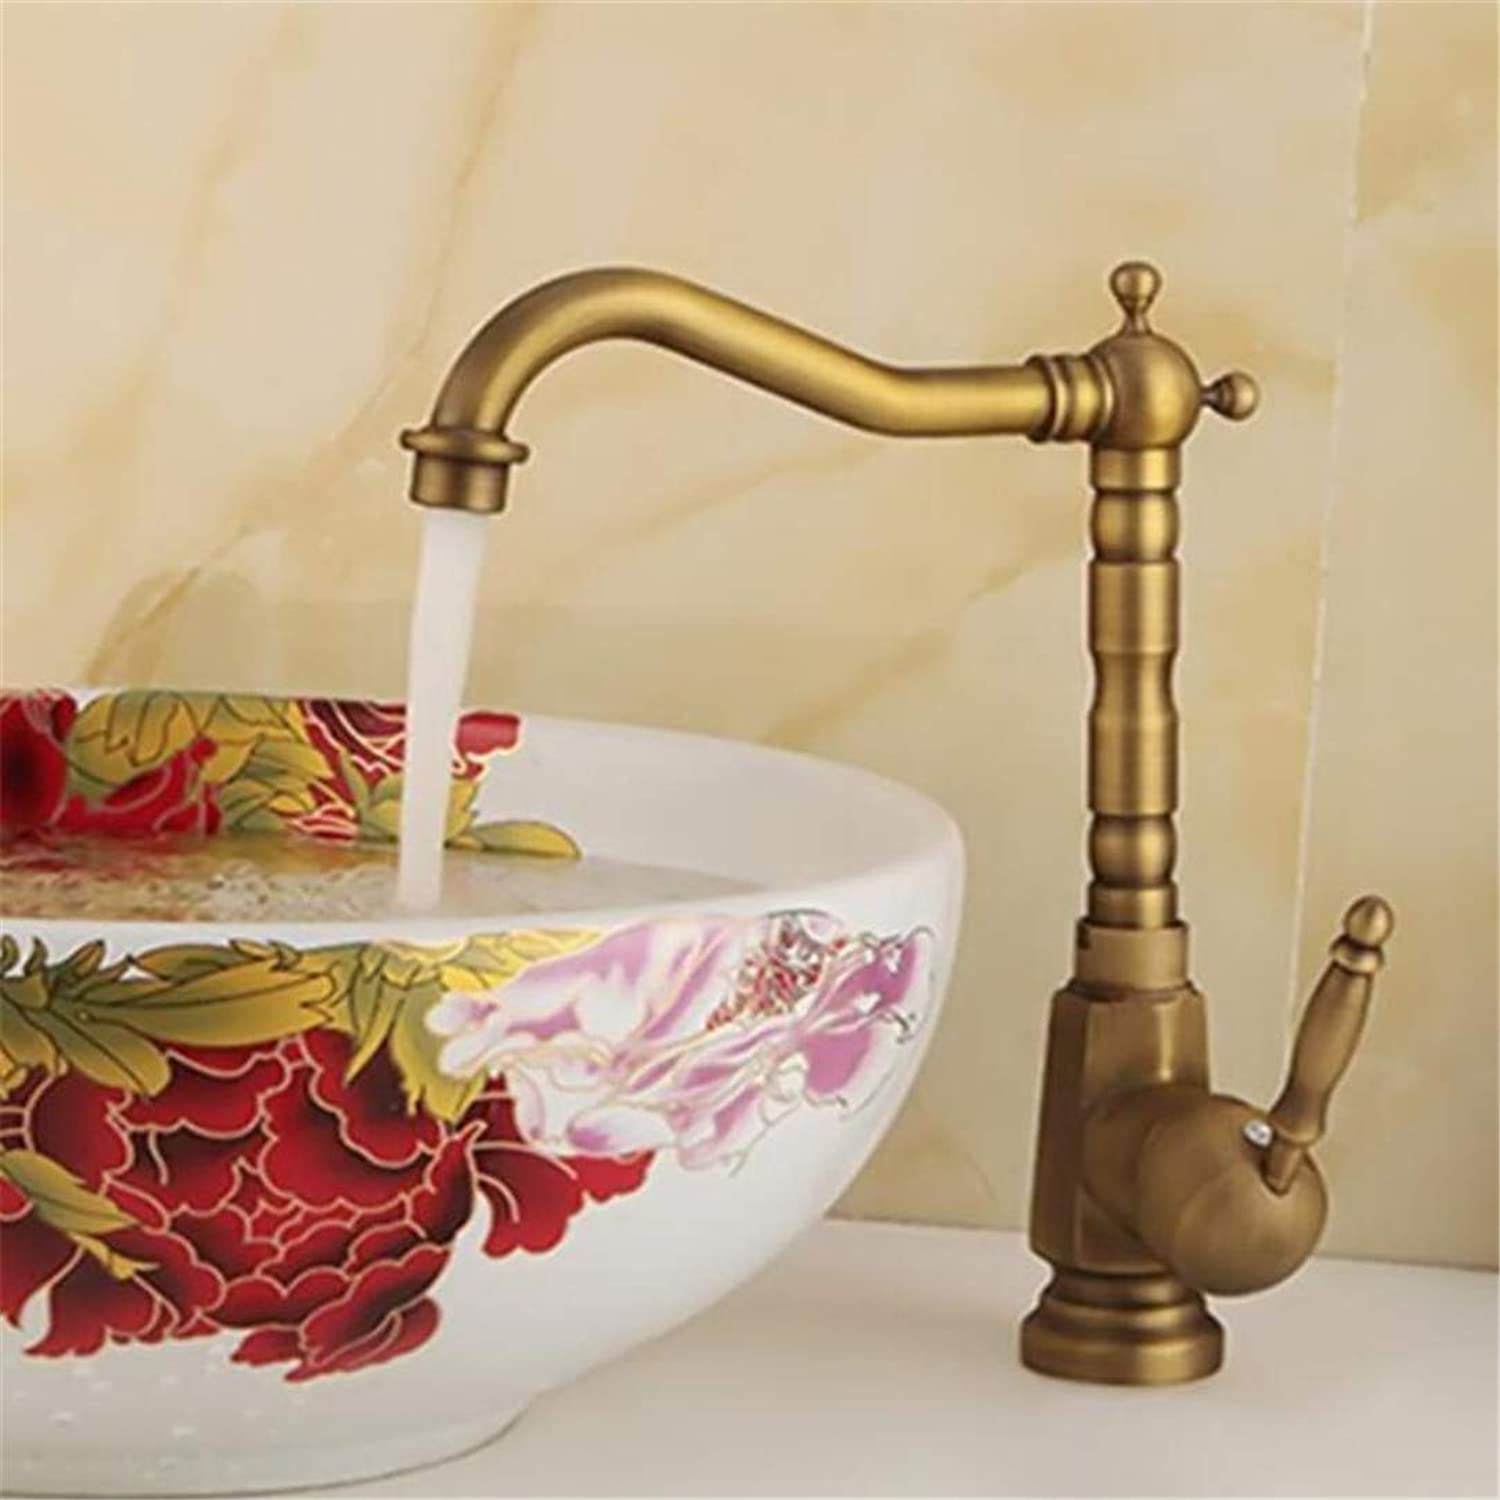 Faucets Basin Mixer ?New Product Antique Kitchen Mixer Tap with Solid Brass Antique Kitchen Faucet for Hot Cold Bathroom Basin Sink Tap